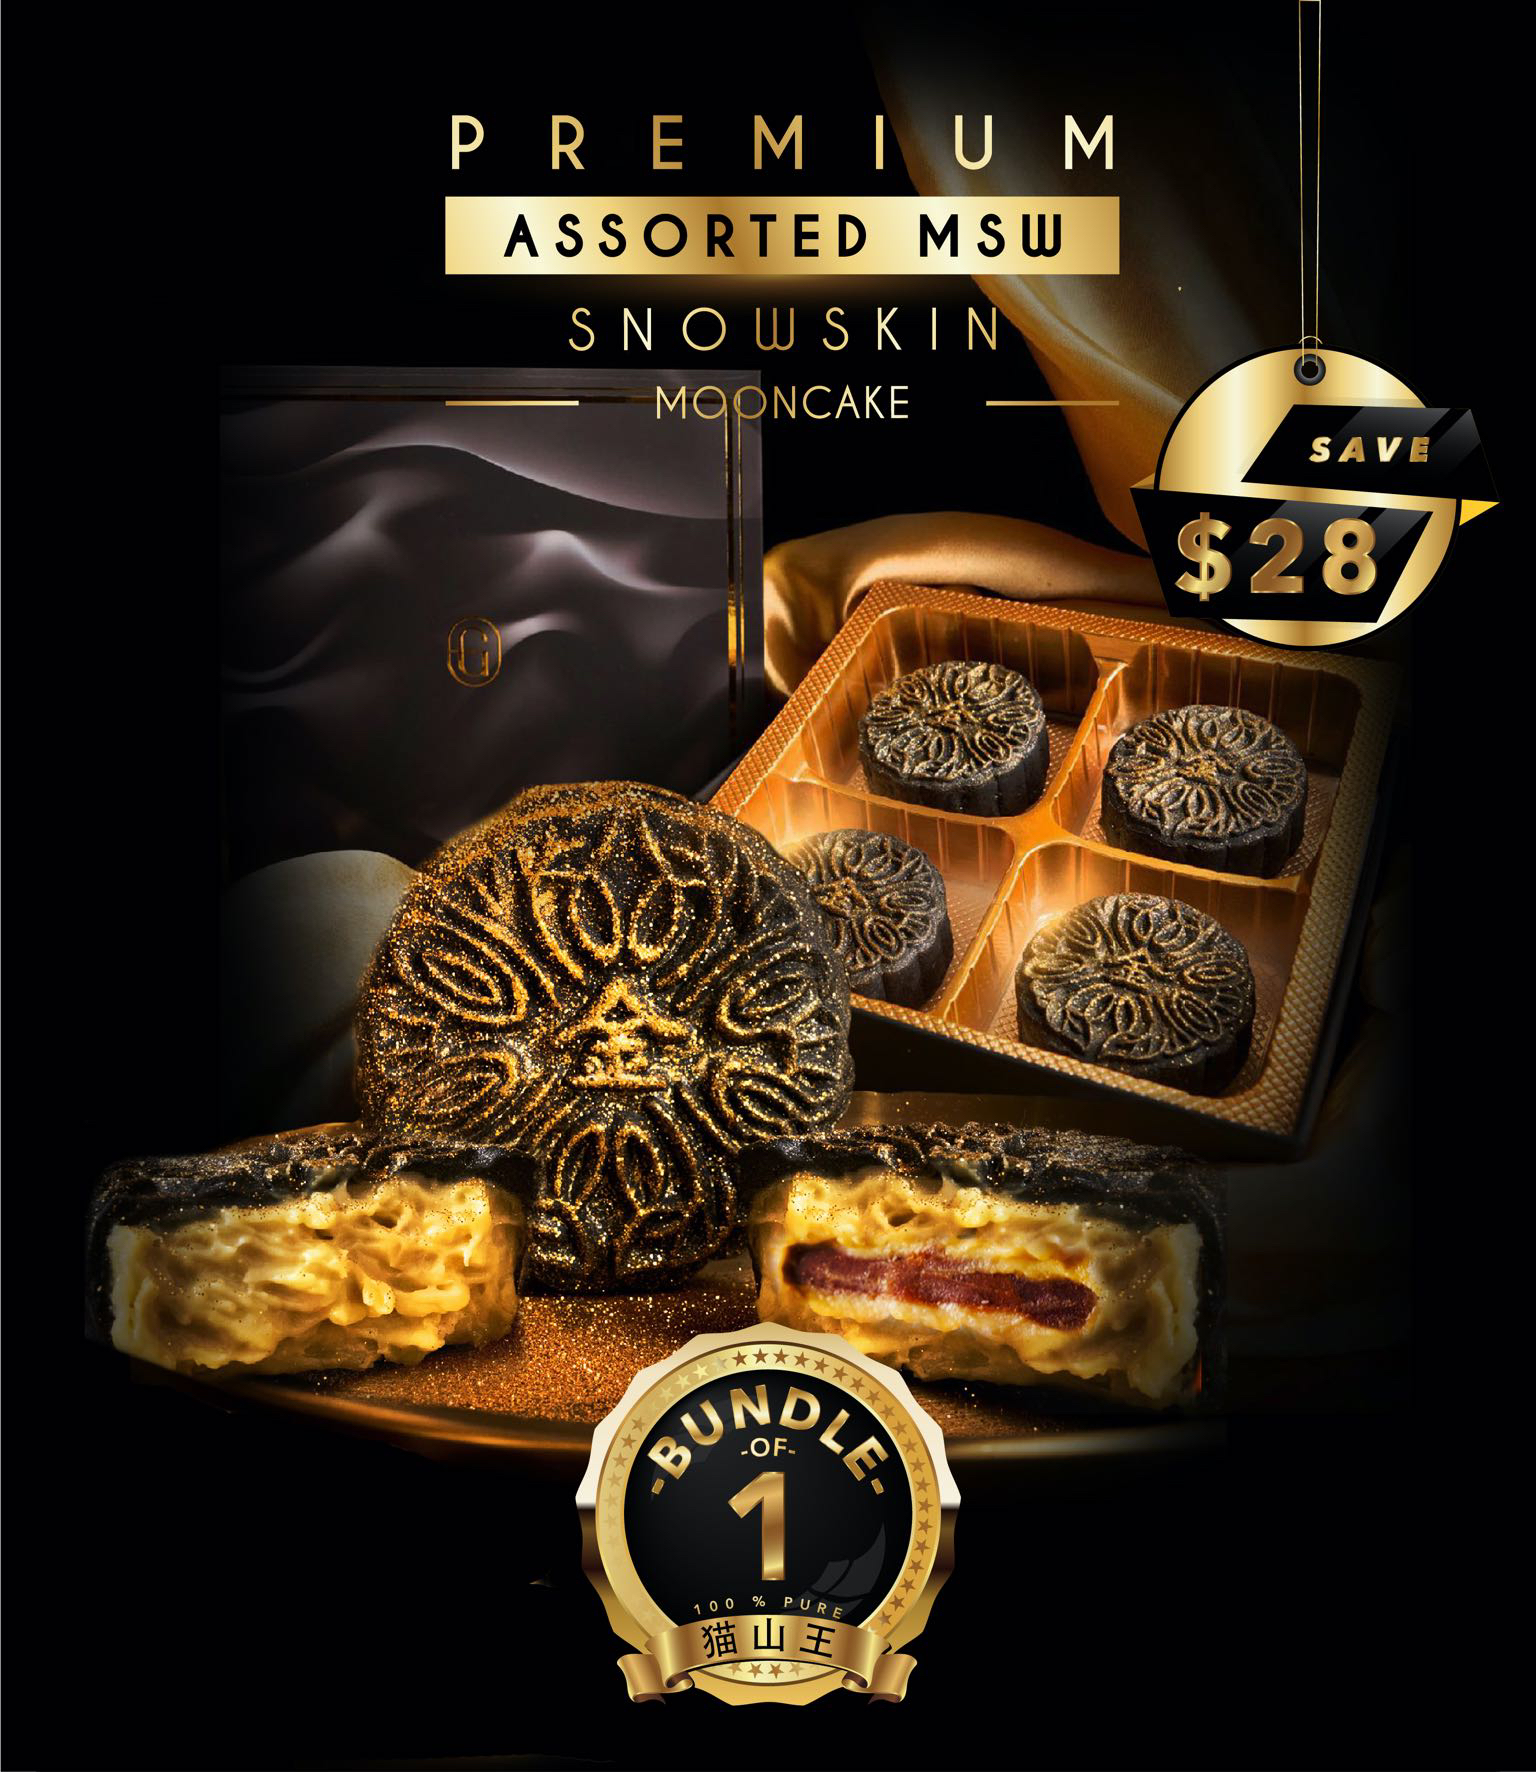 Assorted MSW Snowskin Mooncake (Box of 4) - (SAVE $28)